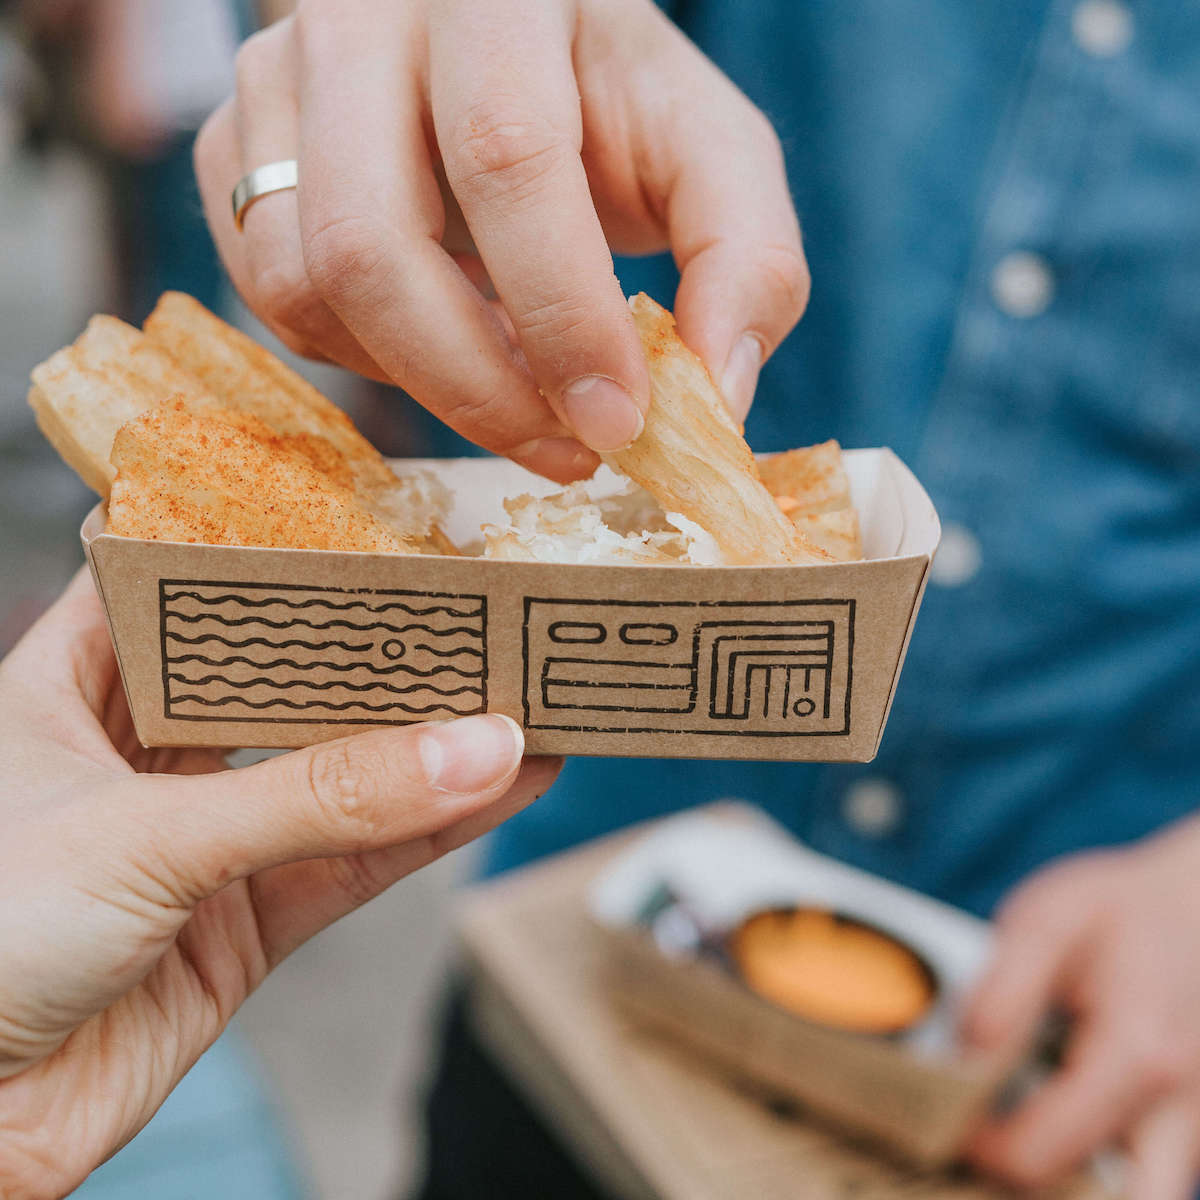 The paper tray with a raised edge perfectly exposes ethnic patterns referring to the style of the streetfood chain Ugood.